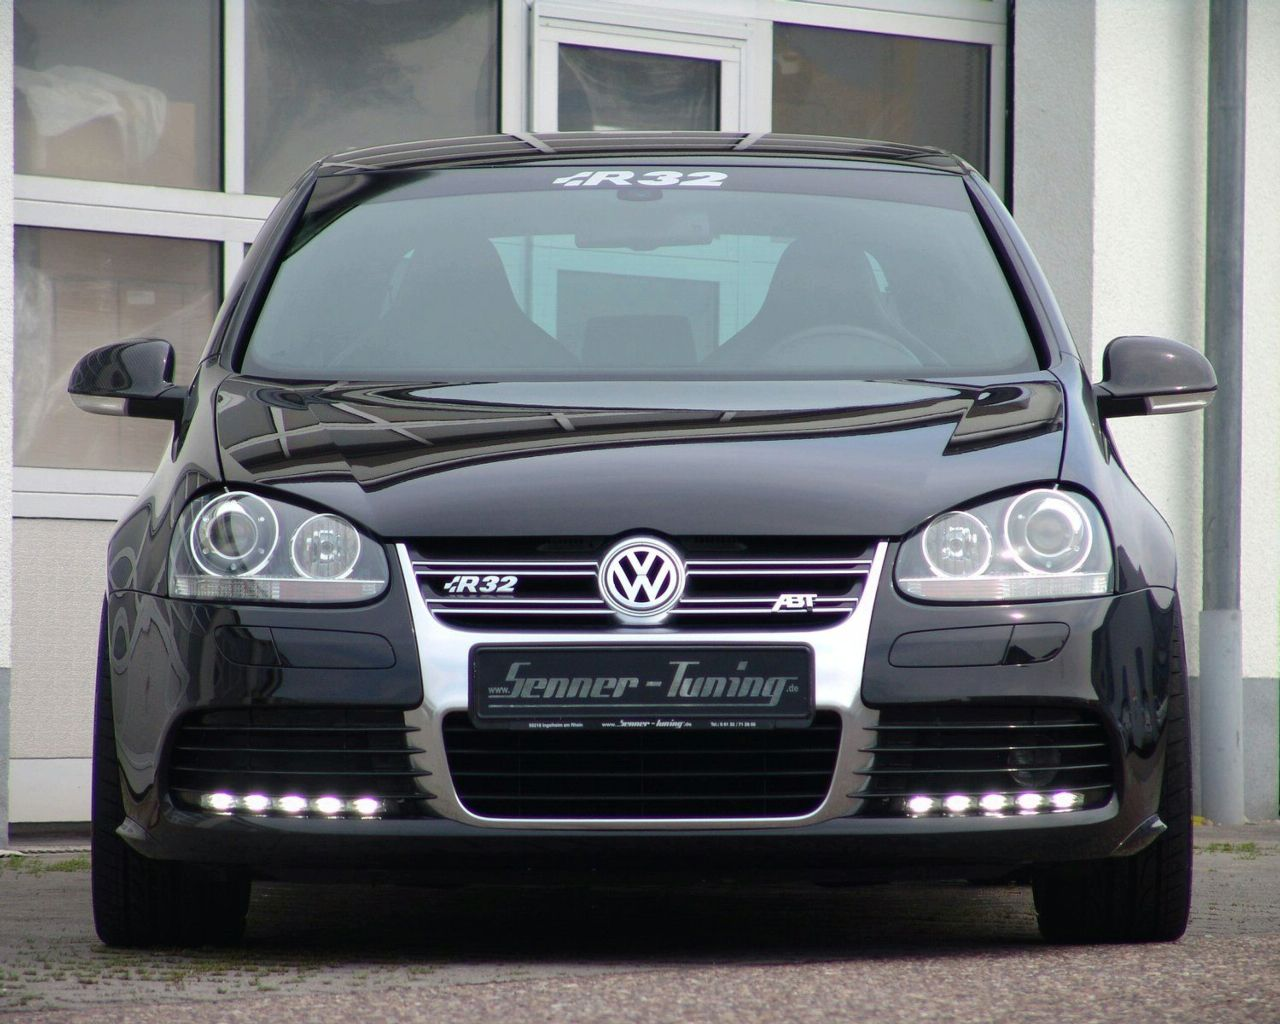 JE-Polo-6R-tuning-6 | VW